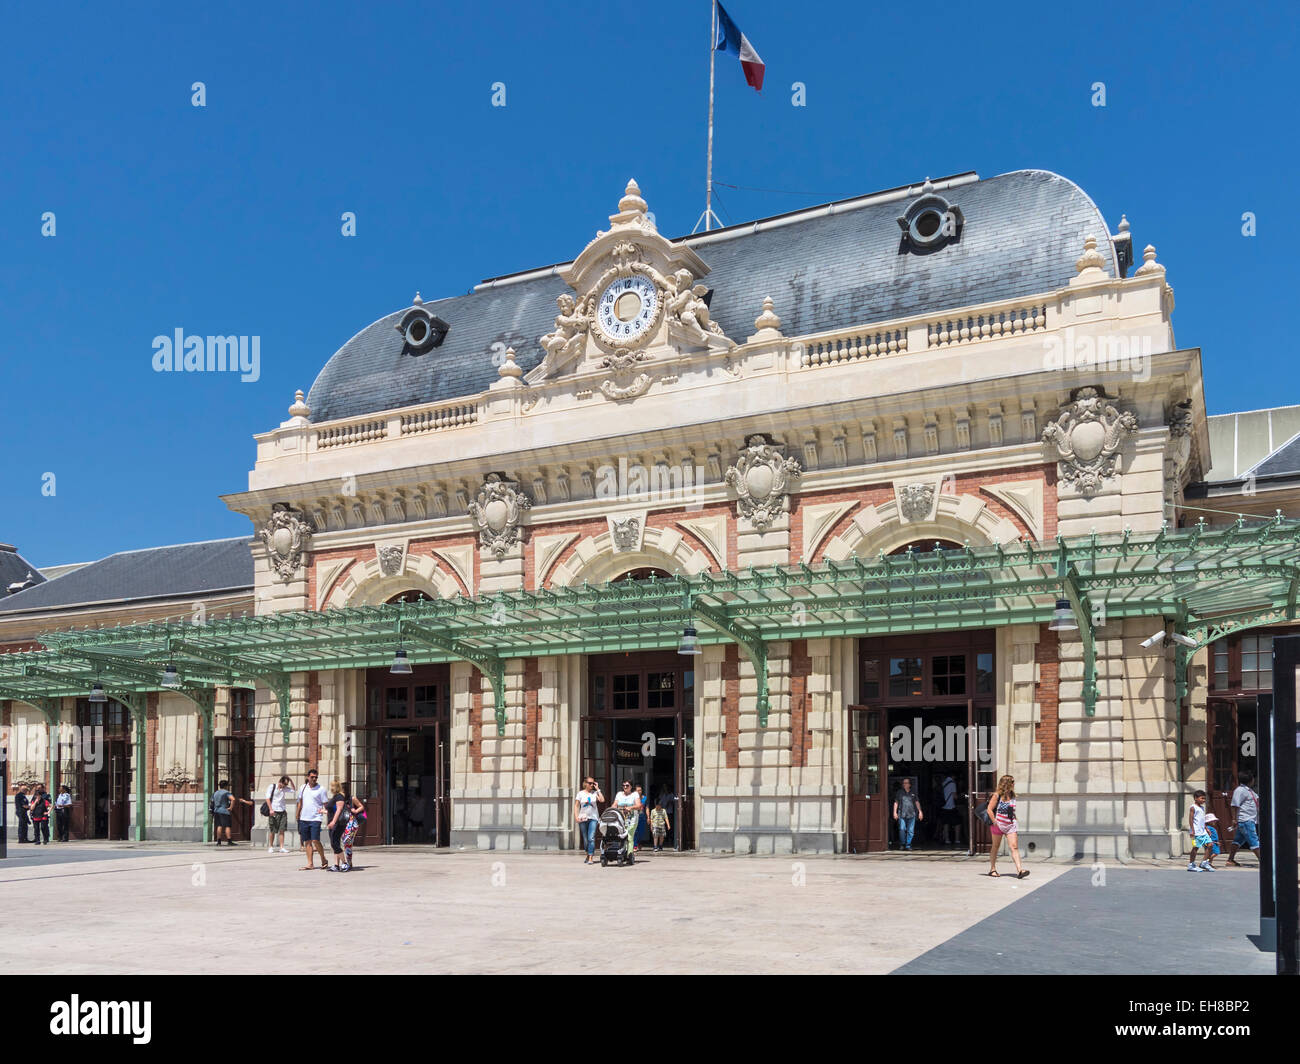 The railway station, Nice, France, Europe - Stock Image